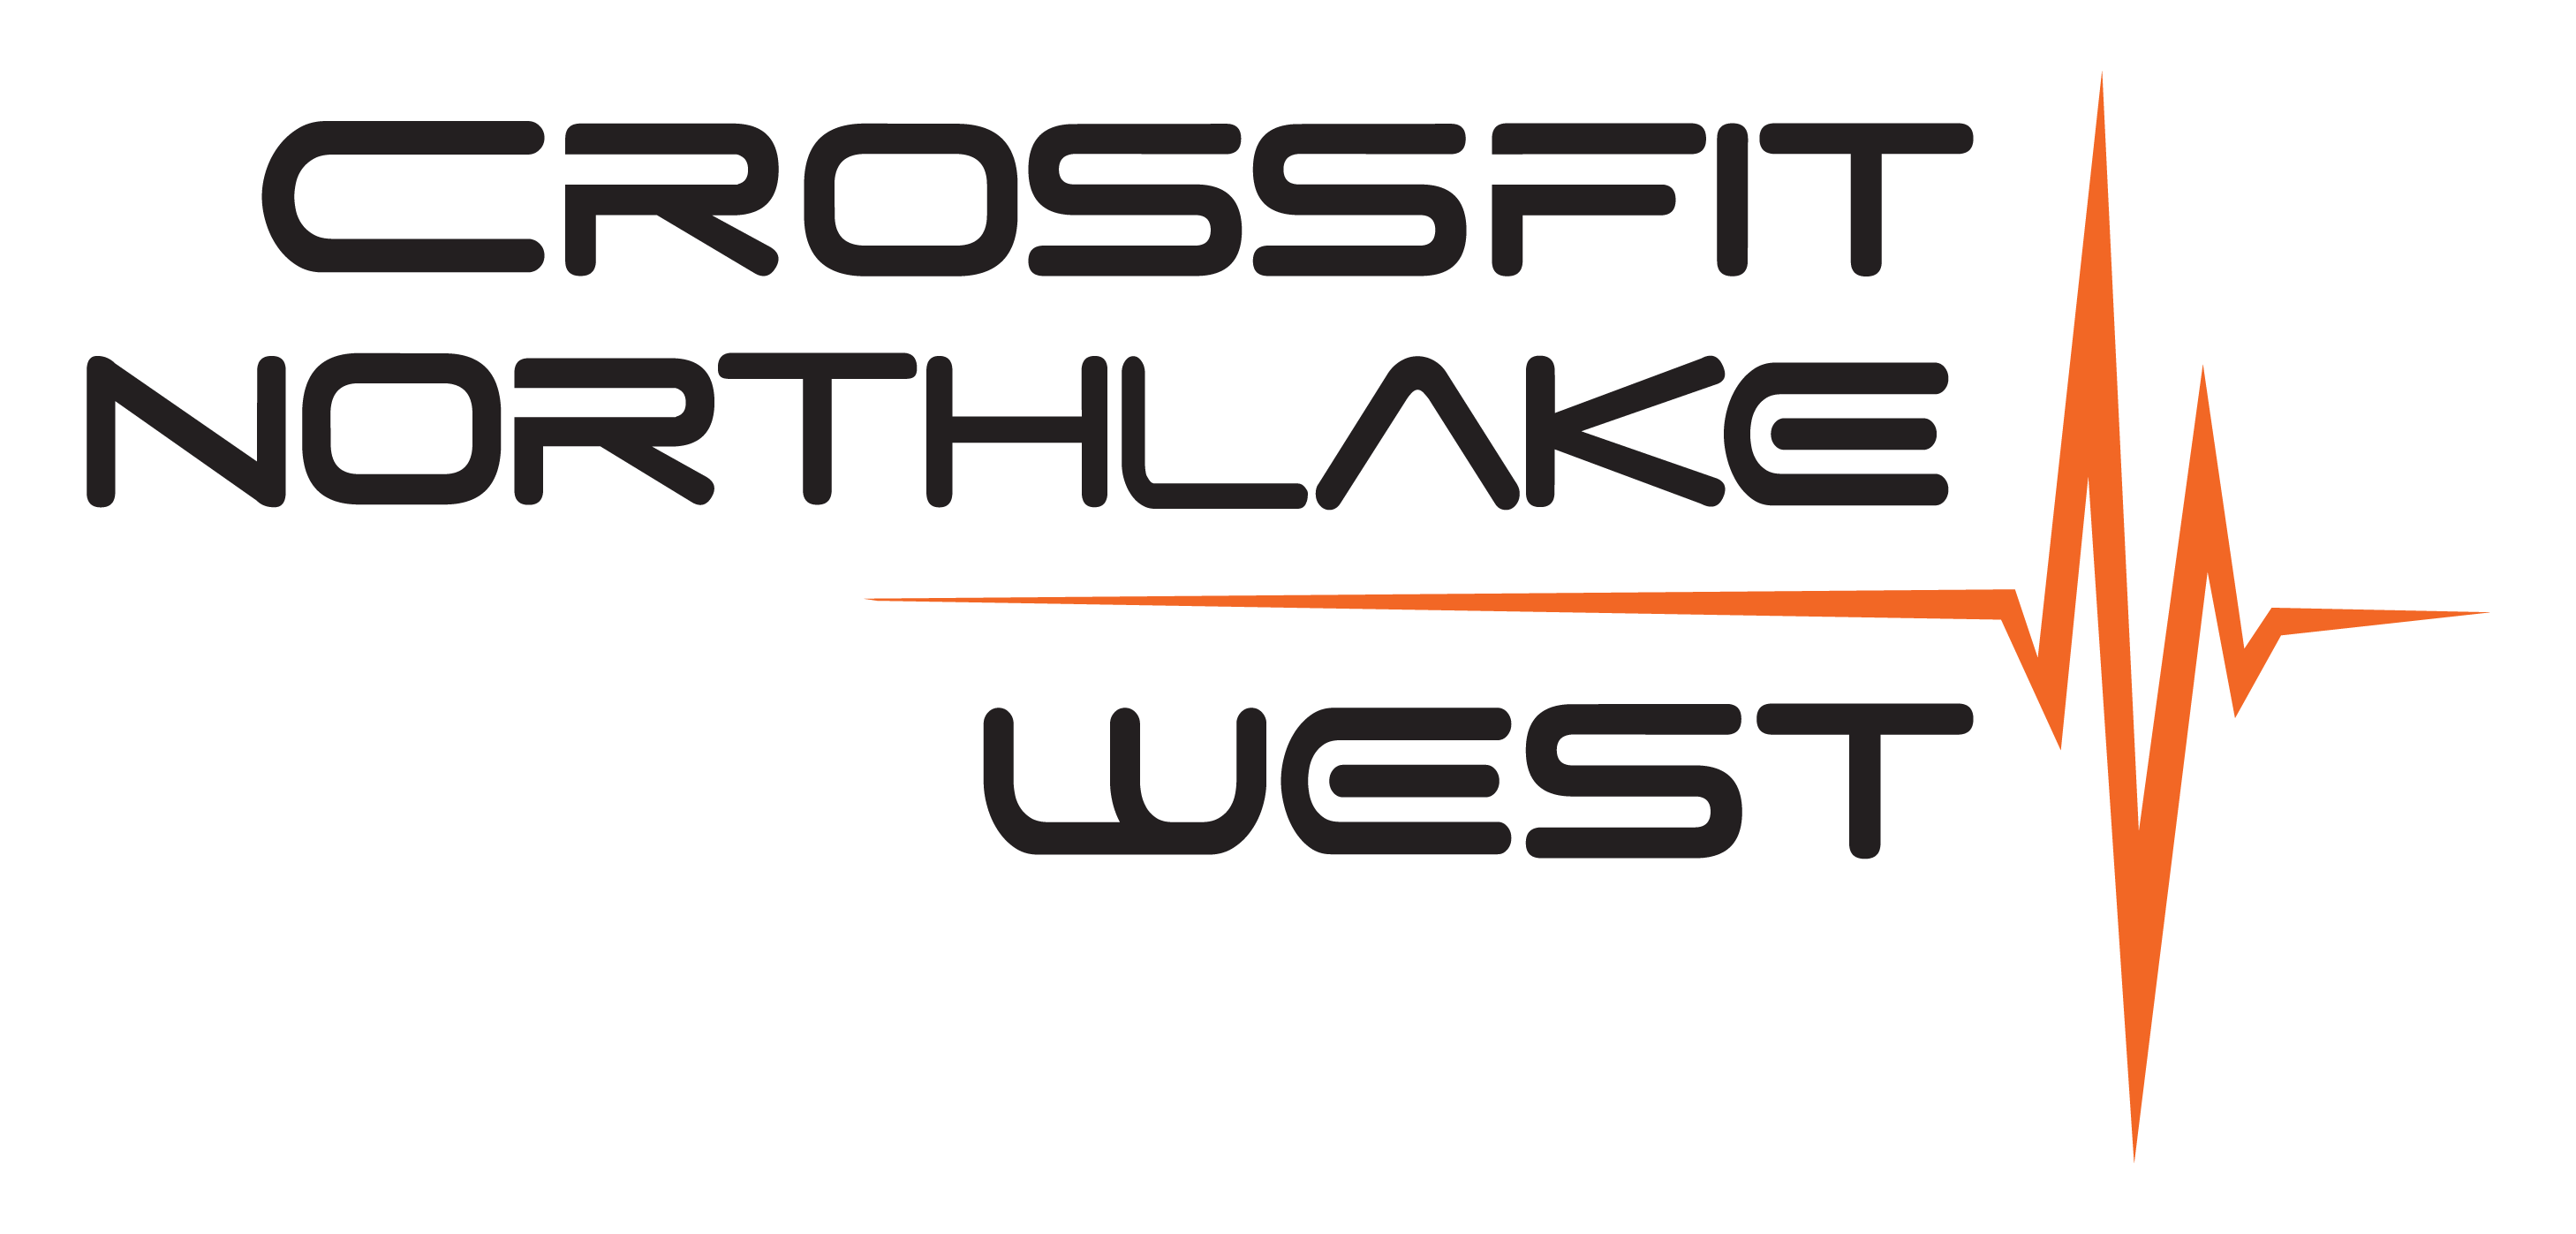 Crossfit Northlake West